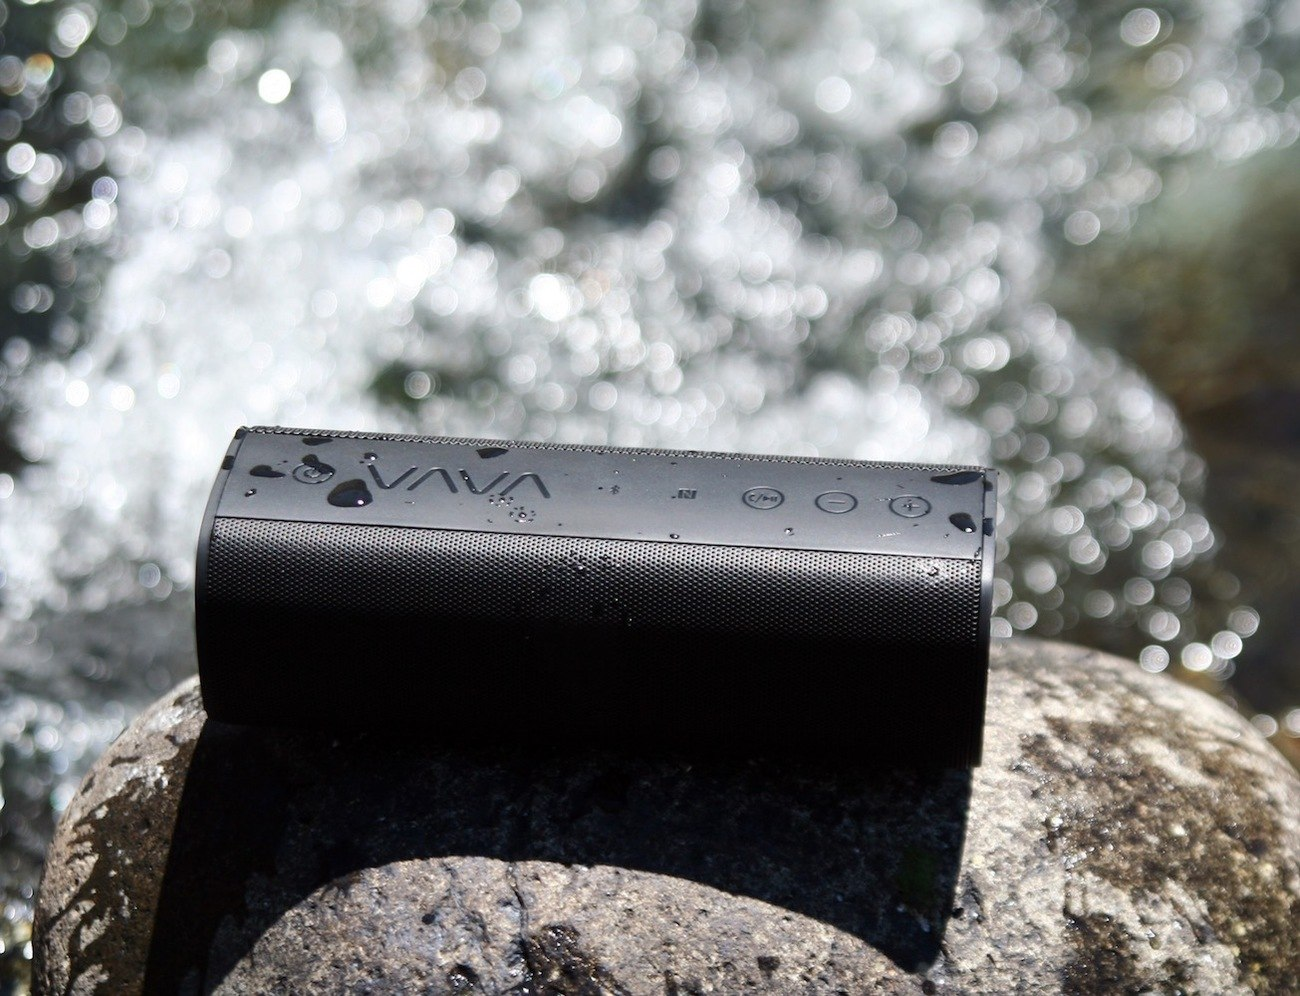 VAVA Voom 20 Portable Bluetooth Speaker